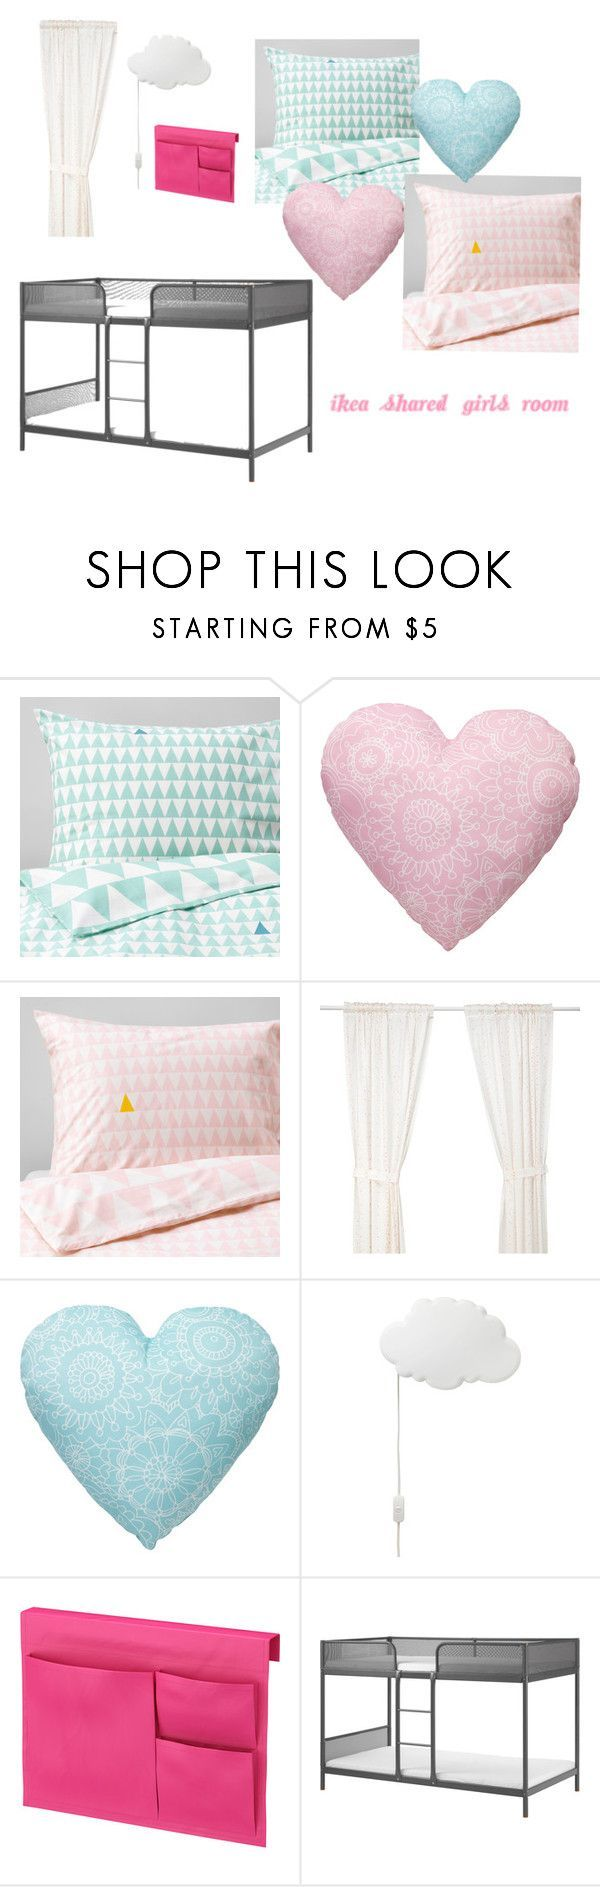 """IKEA Girls Room"" by hopeisobel on Polyvore featuring interior, interiors, interior design, home, home decor and interior decorating"